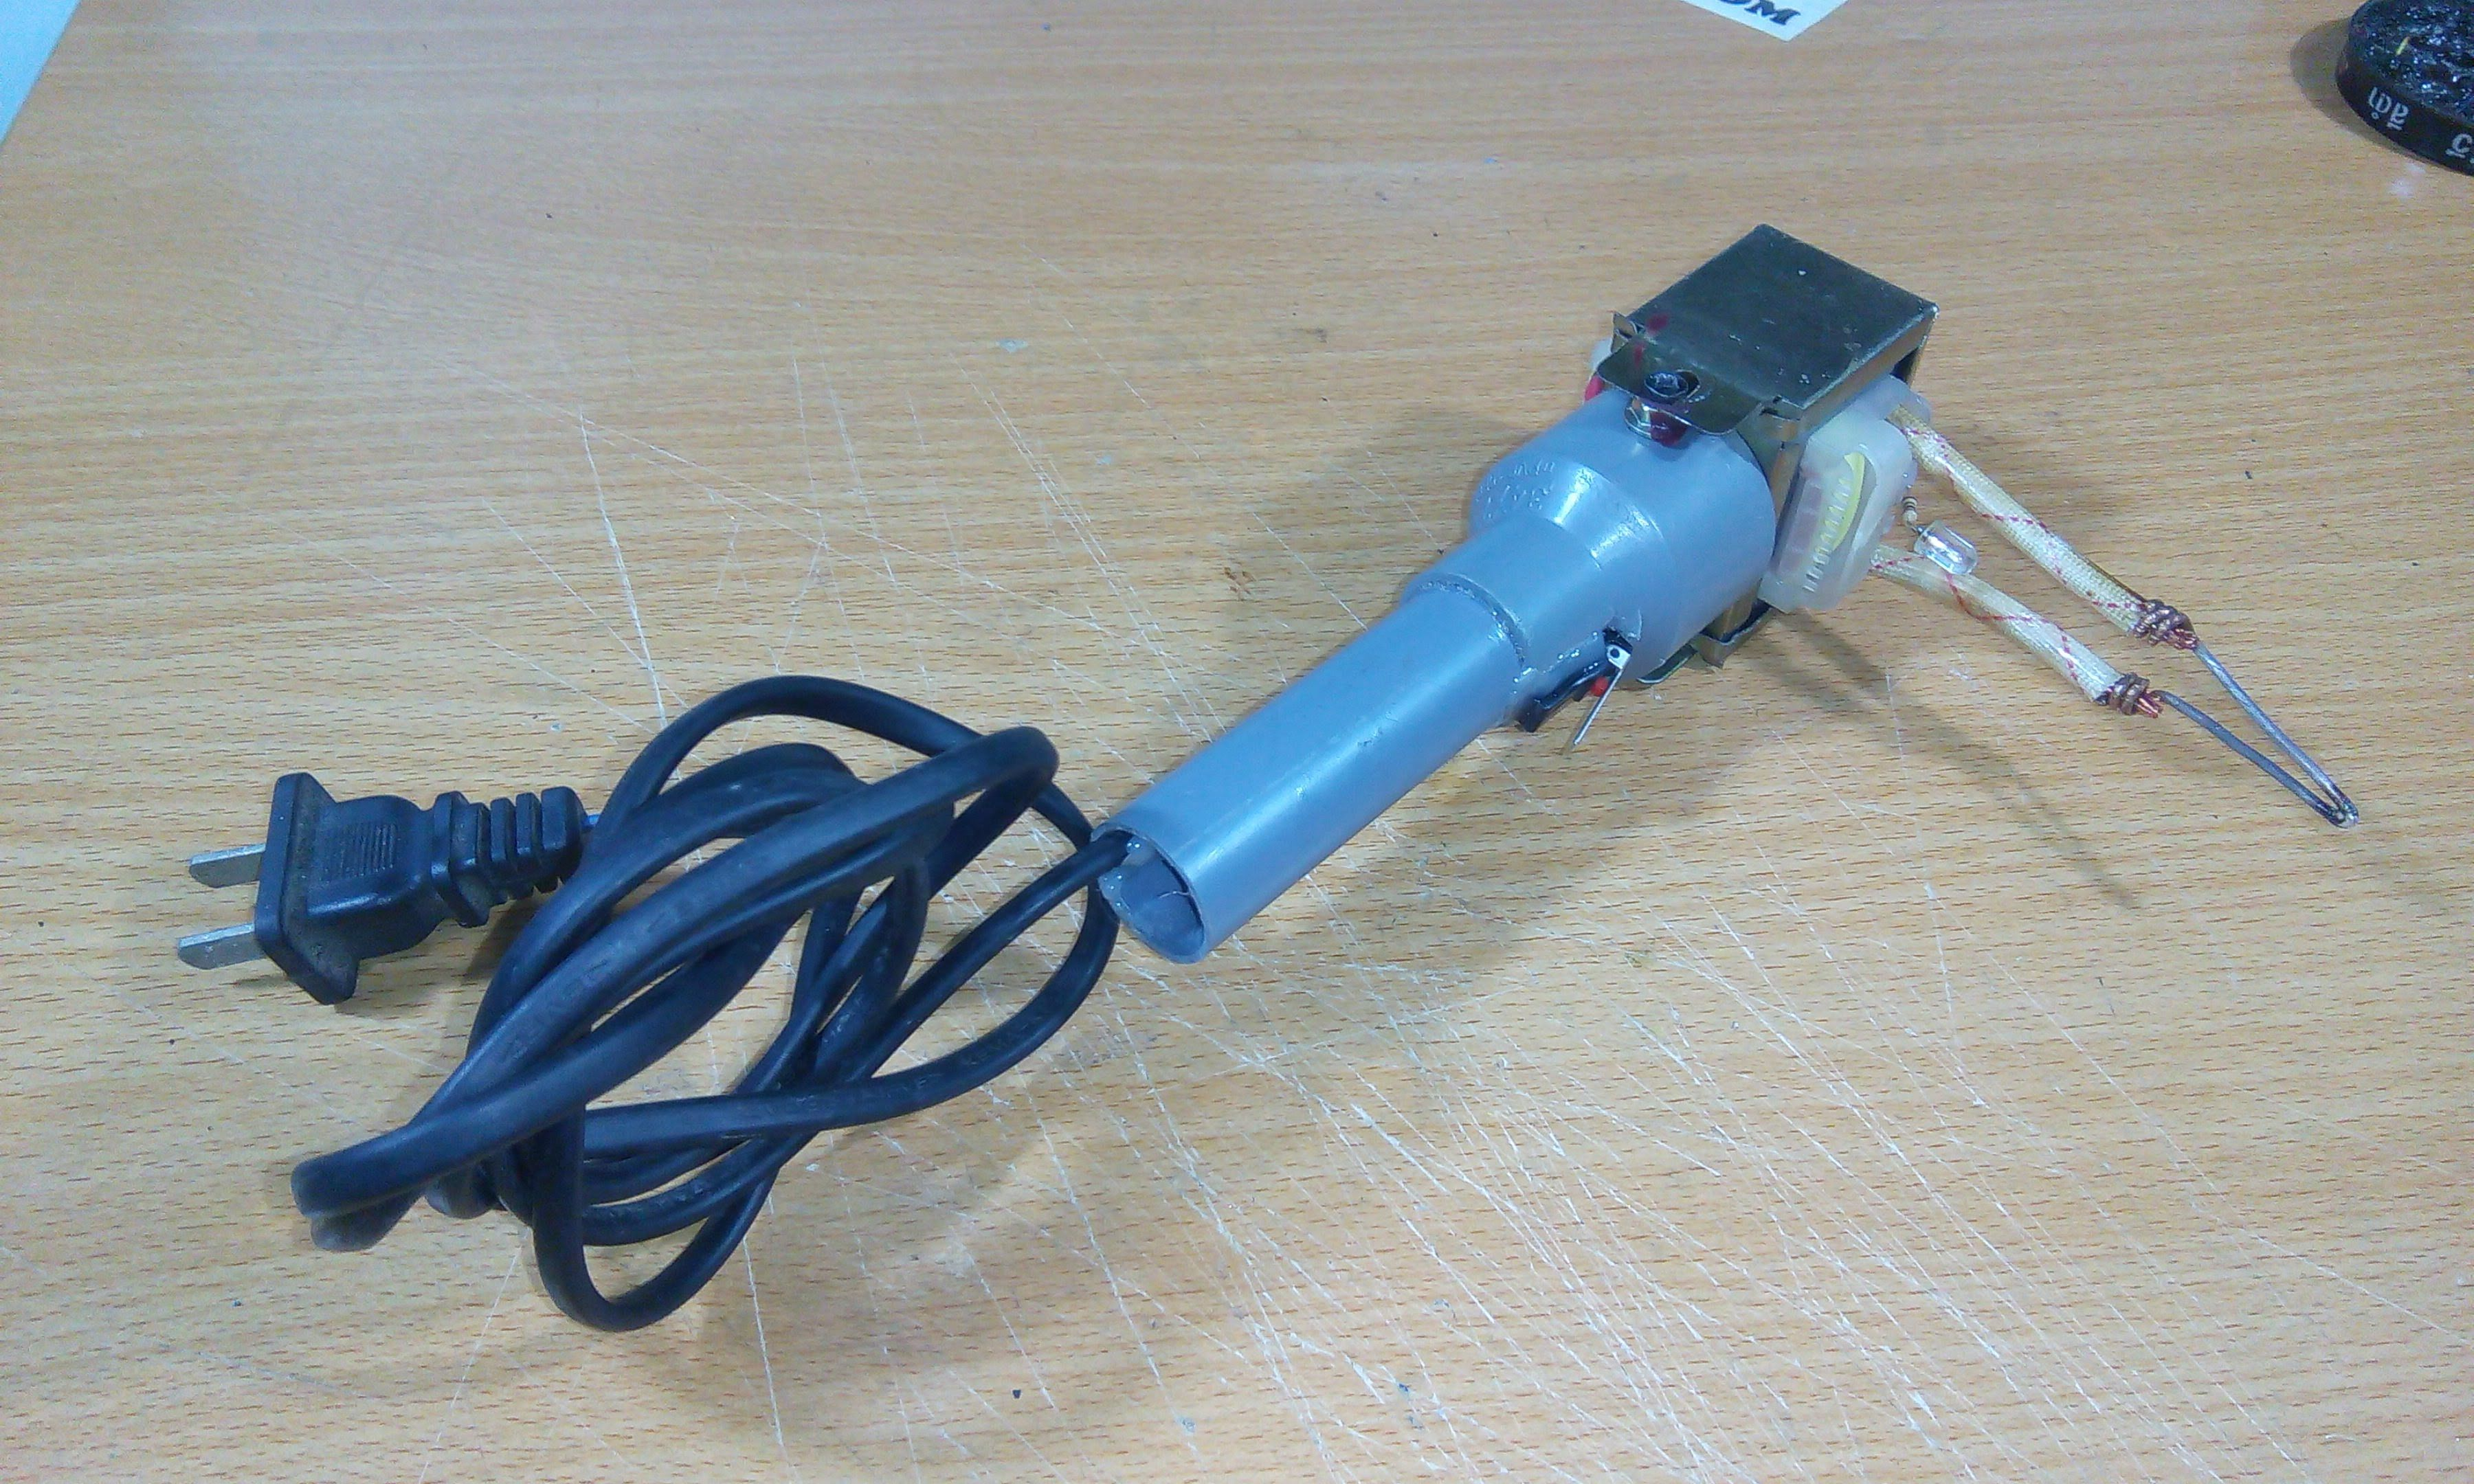 Tutorial] Homemade DIY - How To Make Soldering Gun From transformers ...